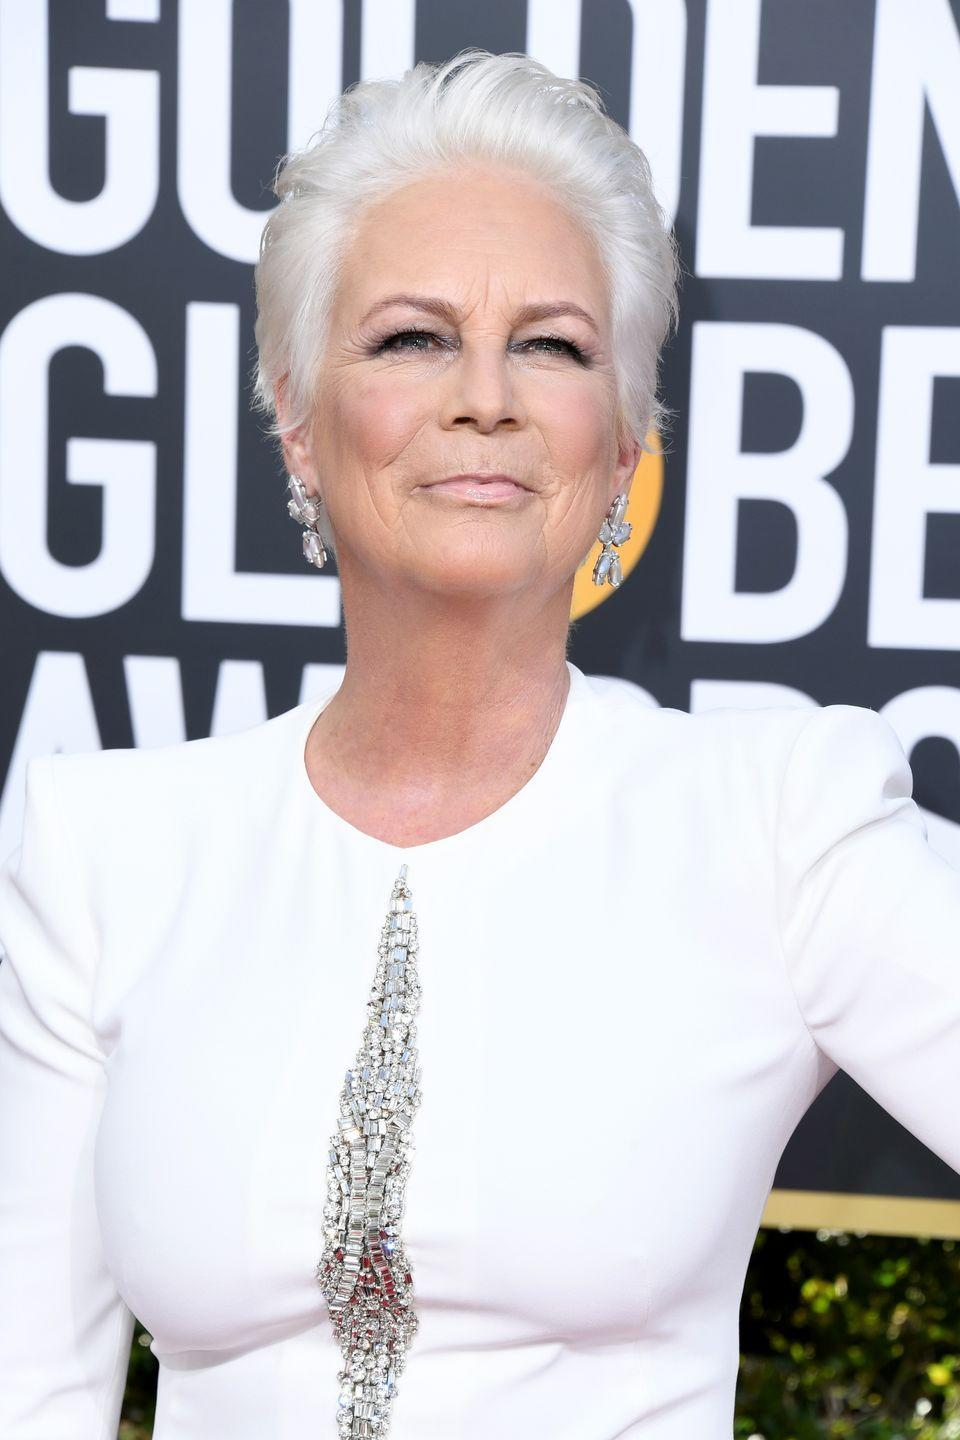 """<p>Cut your hair to pixie-length and dye it bright white to stun like <a href=""""https://www.prevention.com/health/a29728671/jamie-lee-curtis-addiction-father-tony-curtis-interview/"""" rel=""""nofollow noopener"""" target=""""_blank"""" data-ylk=""""slk:Jamie Lee Curtis"""" class=""""link rapid-noclick-resp"""">Jamie Lee Curtis</a>. This is the perfect color for letting your lighter strands grow in.</p>"""